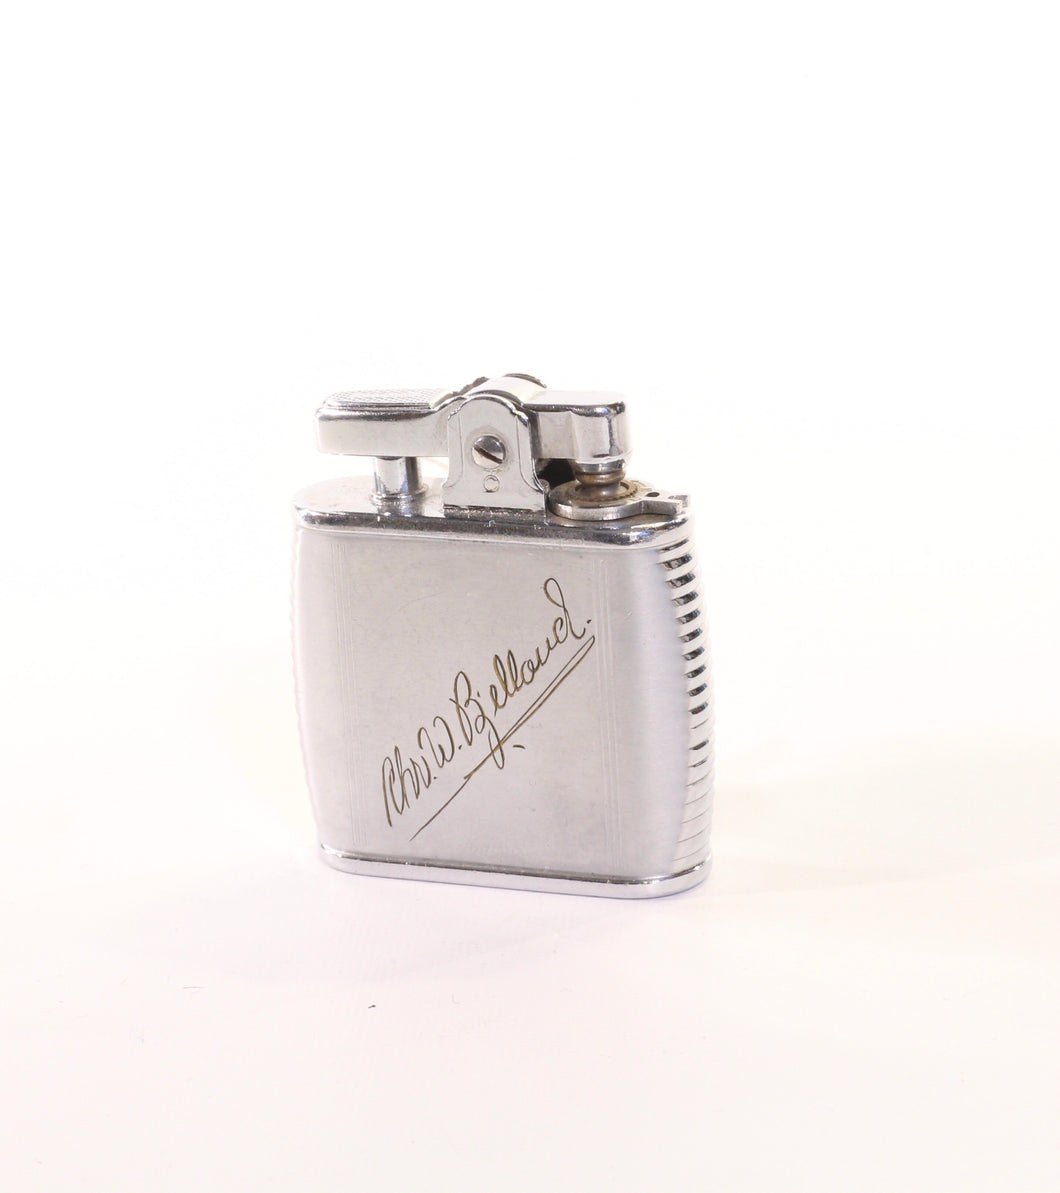 Christian Willhelm Bjelland's lighter